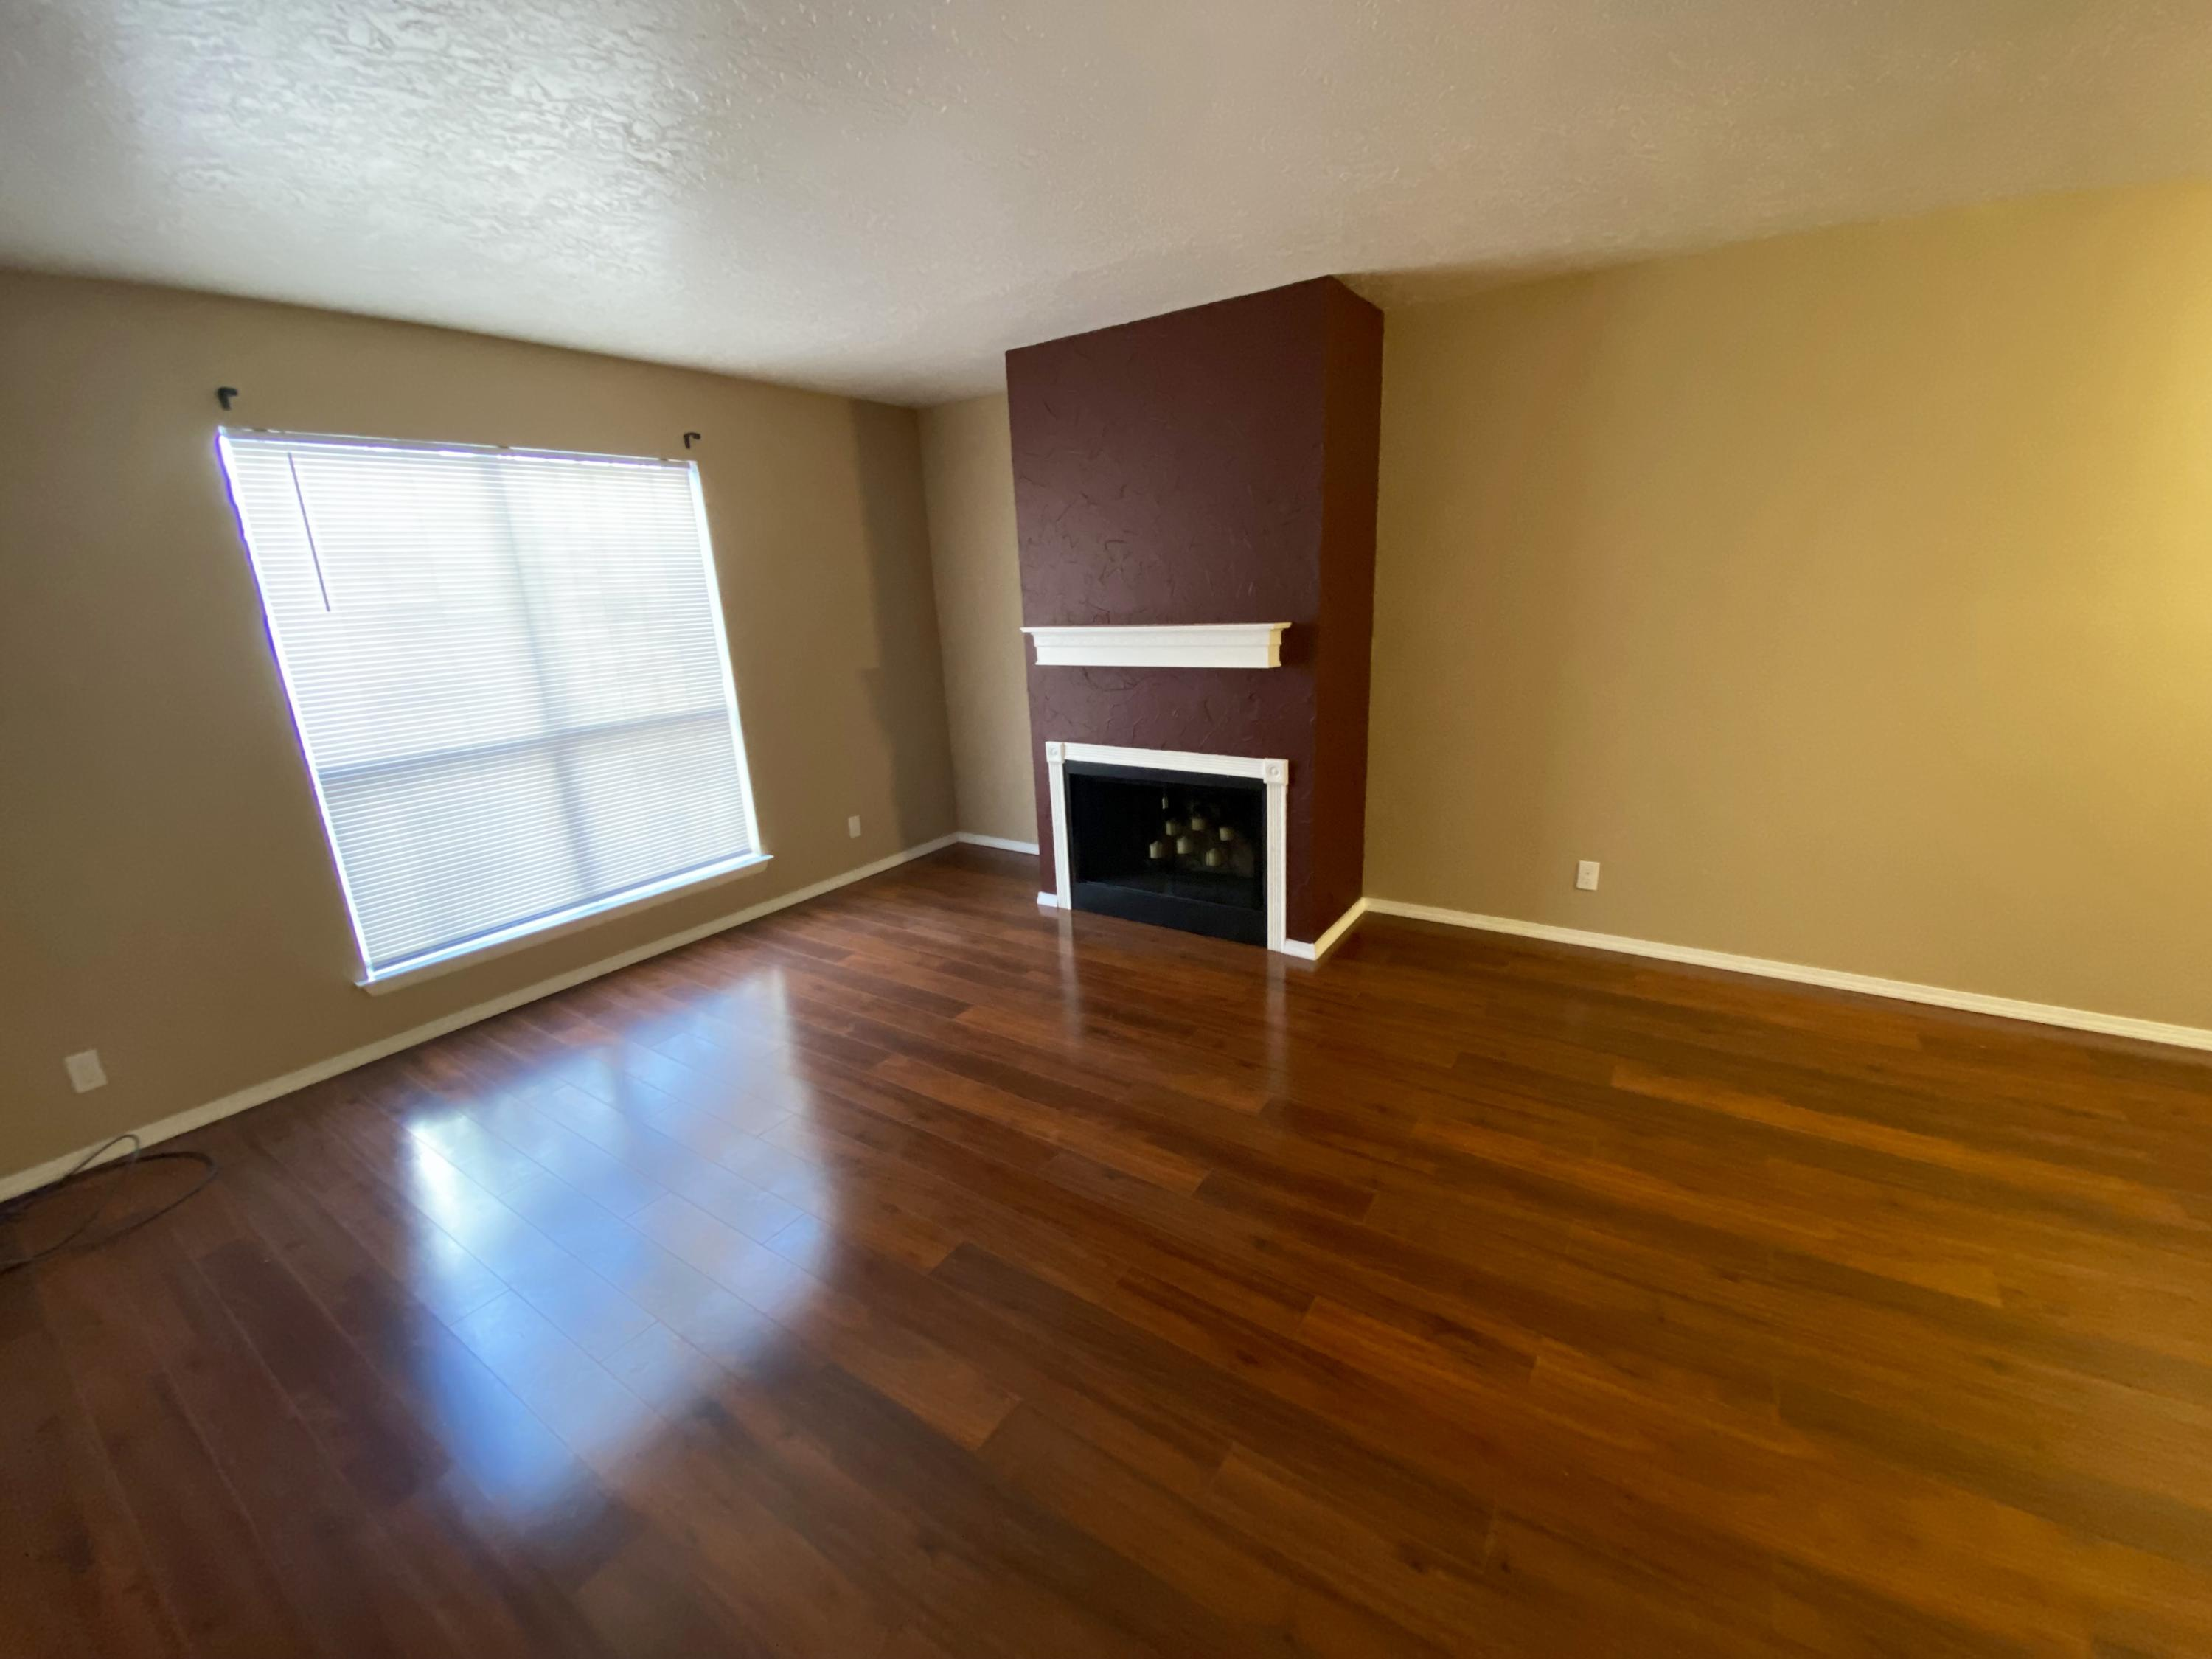 Great home in quiet community with pool and park. Large fireplace, and walk-in closets. Move-in ready.